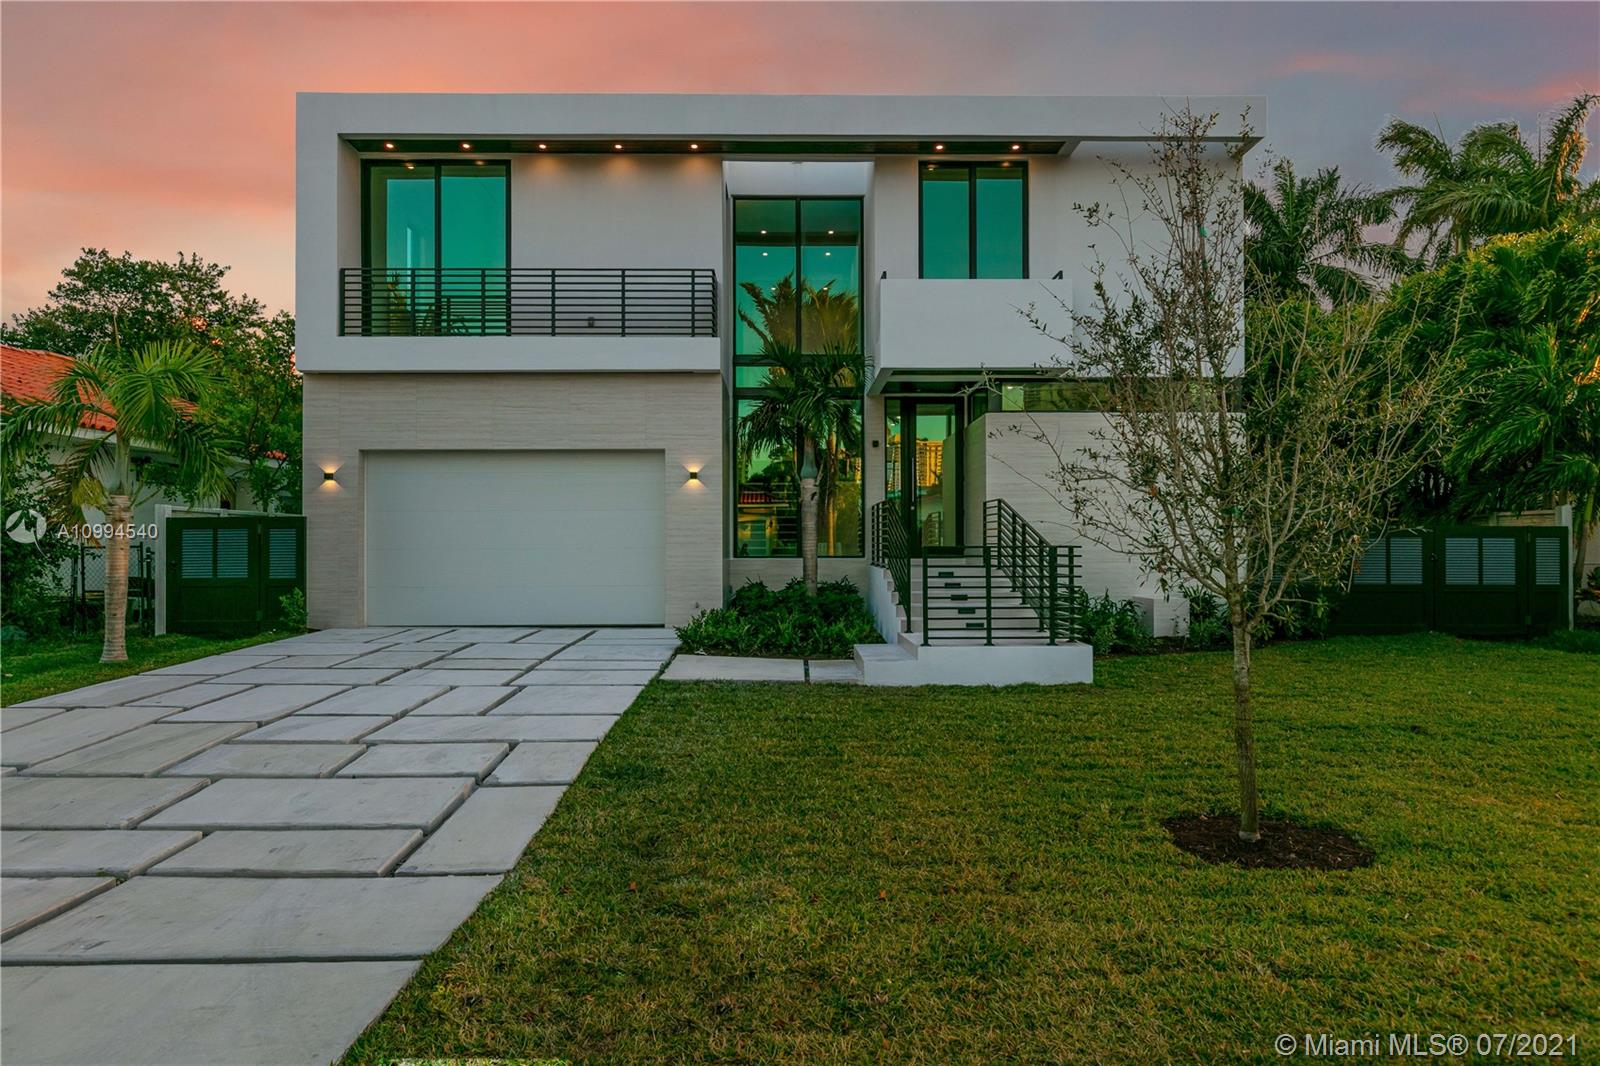 Inspiring brand new construction home in the world-renowned Sunny Isles Beach. The entrance greets you with a modern flow-through design and a custom floating oak staircase. This home features 5,267 sq.ft of living space including an 847 sq.ft rooftop terrace with 360-degree views of the Intracoastal waterway. 5 beds/5.5 baths, maids quarters, private elevator, Chef's kitchen, 2 car garage, rooftop and pool area summer kitchens, accordion impact sliding doors. Impact windows throughout with -Italian soundproof/trimless doors inside, private grassed play area. This home offers unparalleled finishes & impressive architecture made for any buyer looking for perfect combination of high-end finishes with contemporary design and outdoor luxury living. Walk to the beach. A+ School District